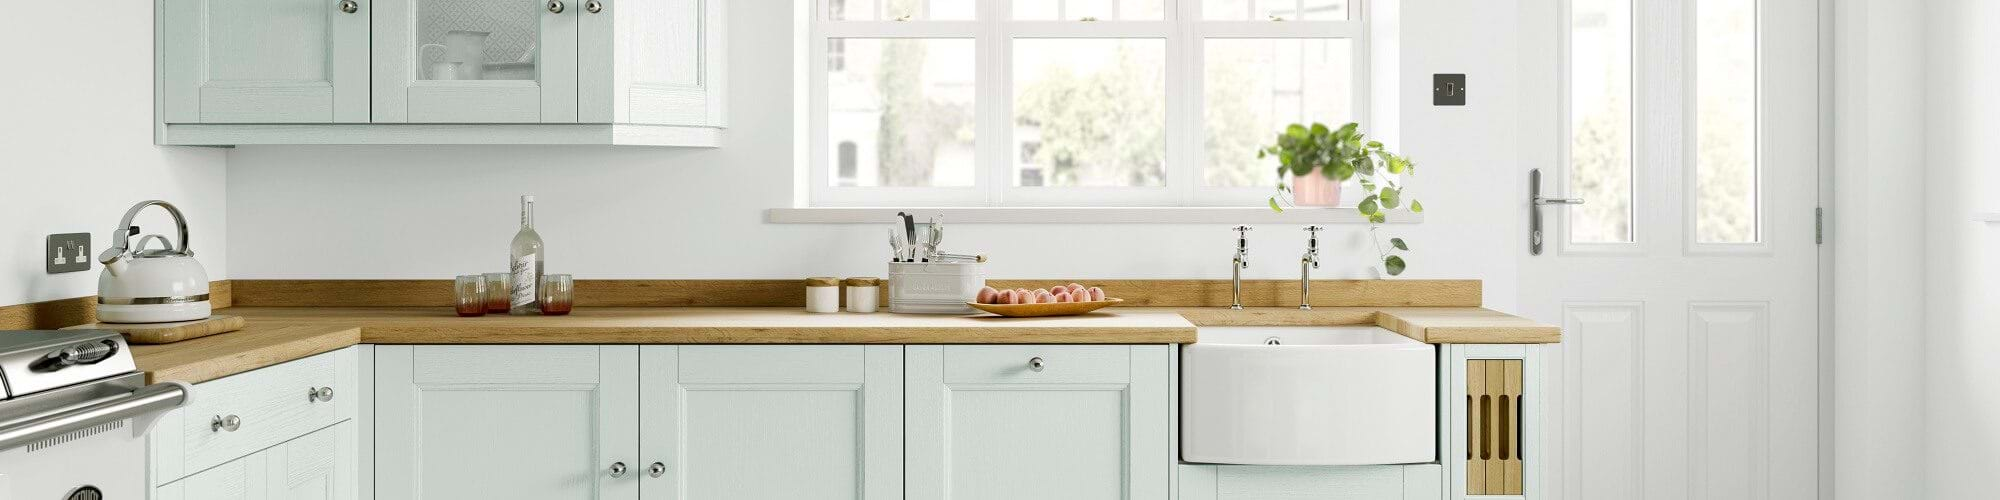 Laura Ashley Rosedale painted wood kitchen in chalk white and pale duck egg